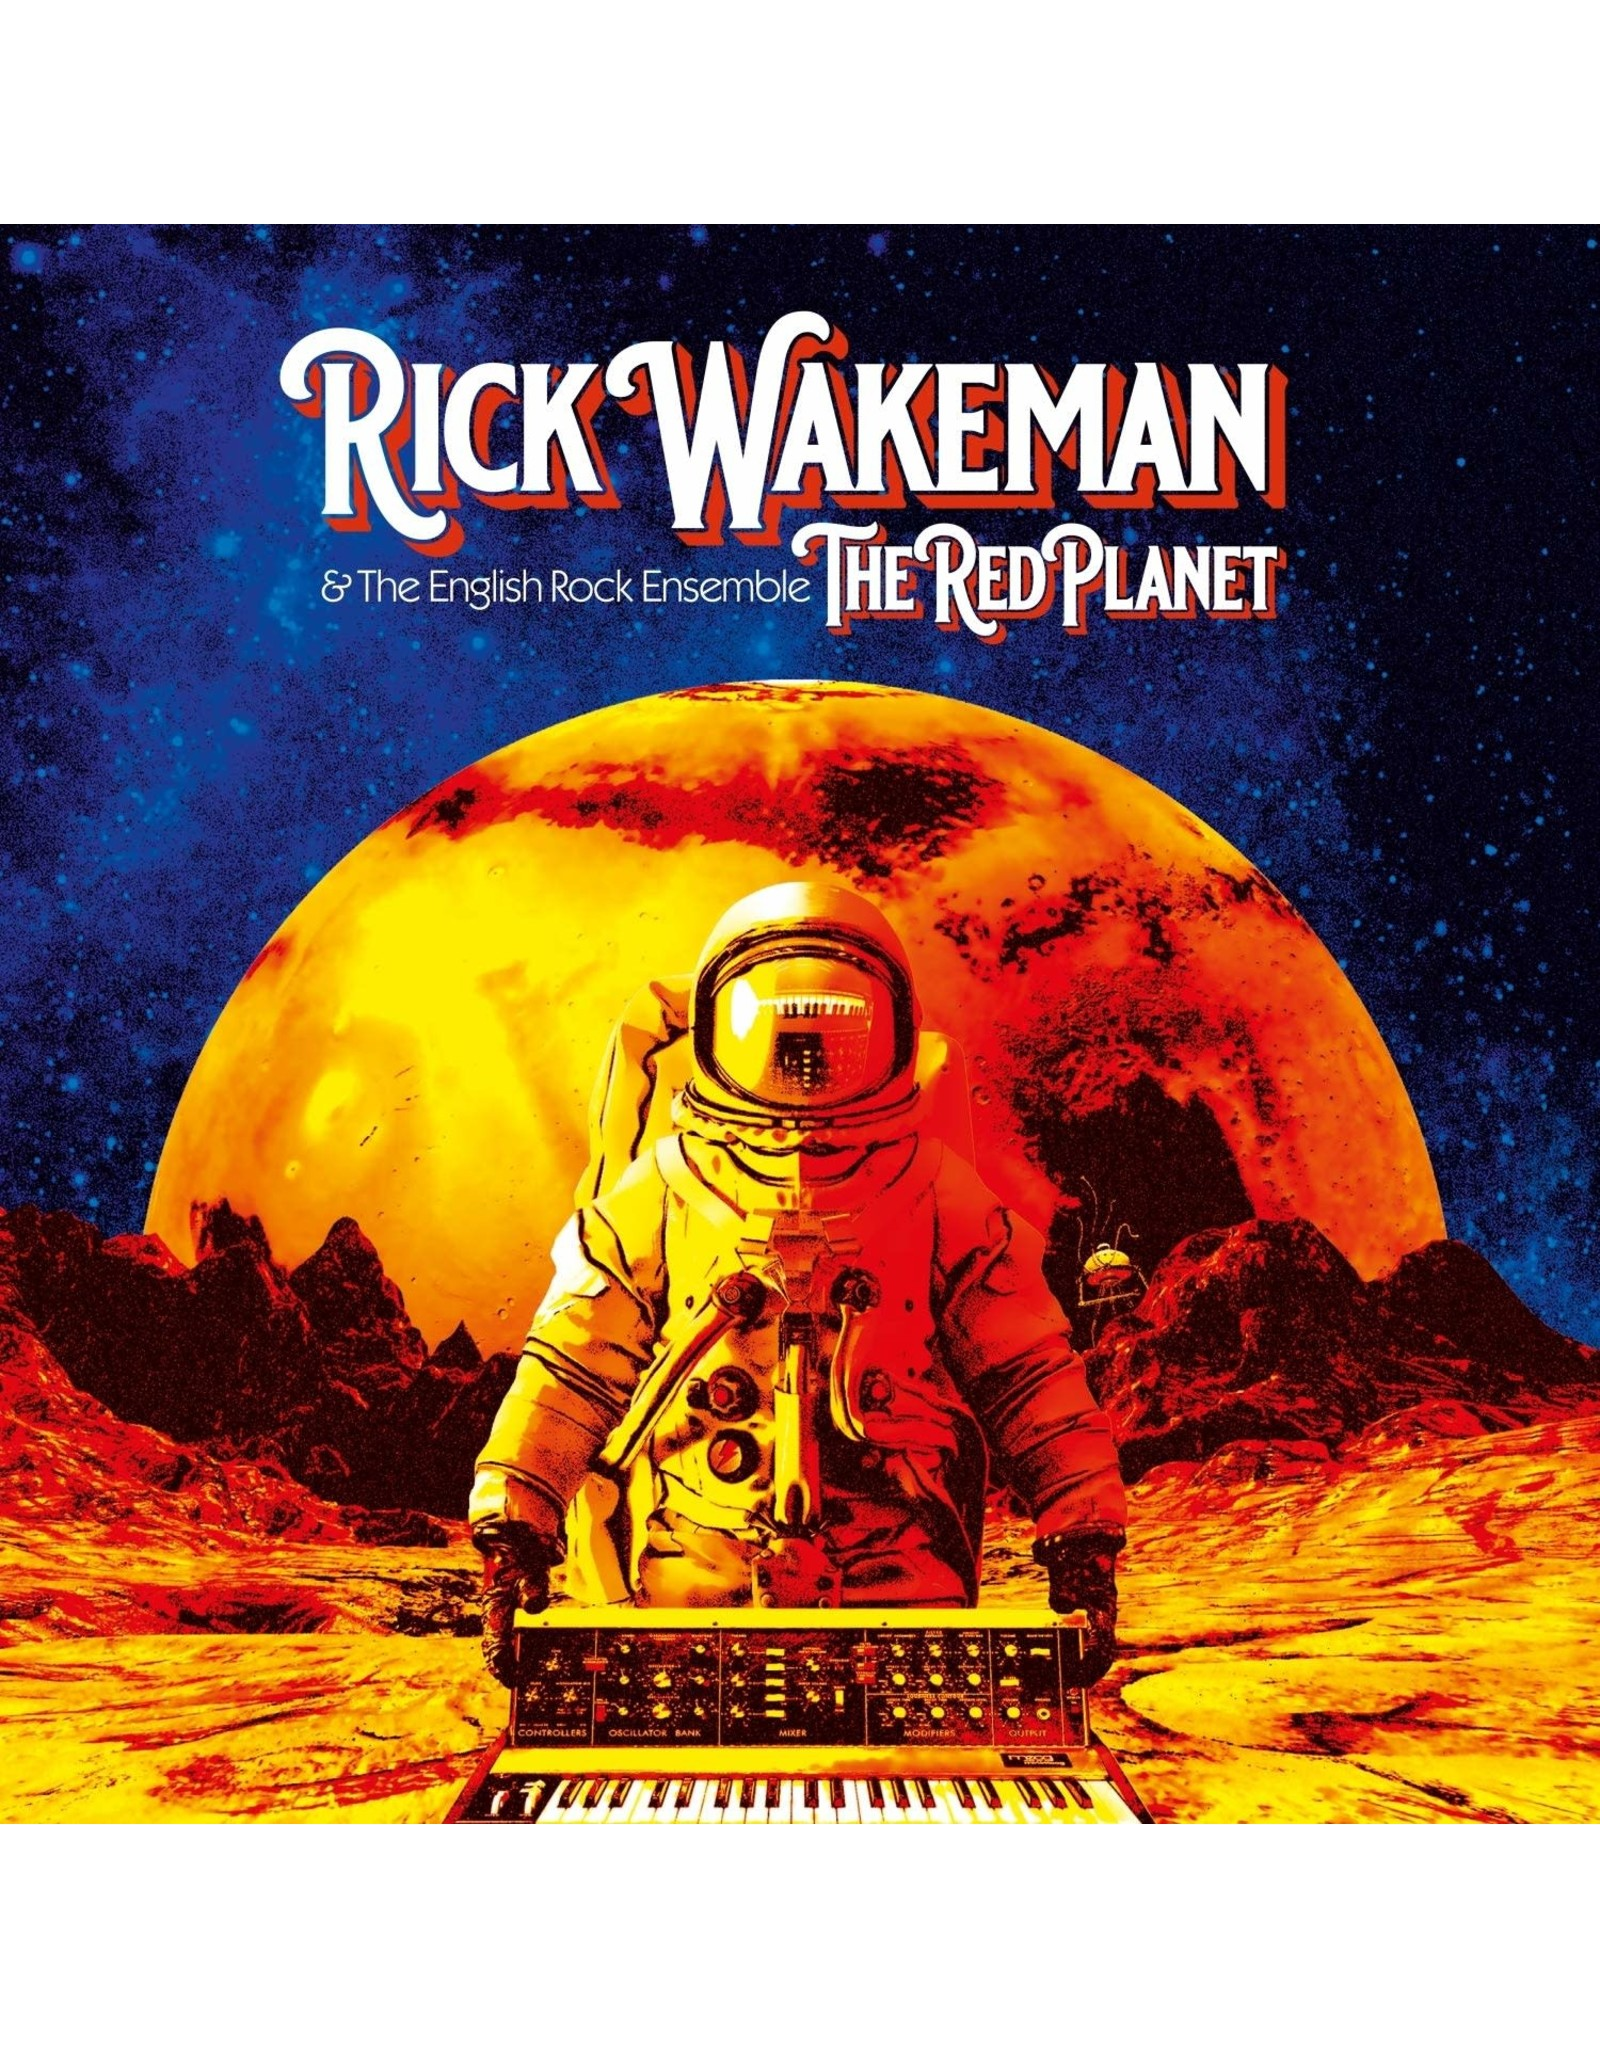 Wakeman, Rick - The Red Planet LP